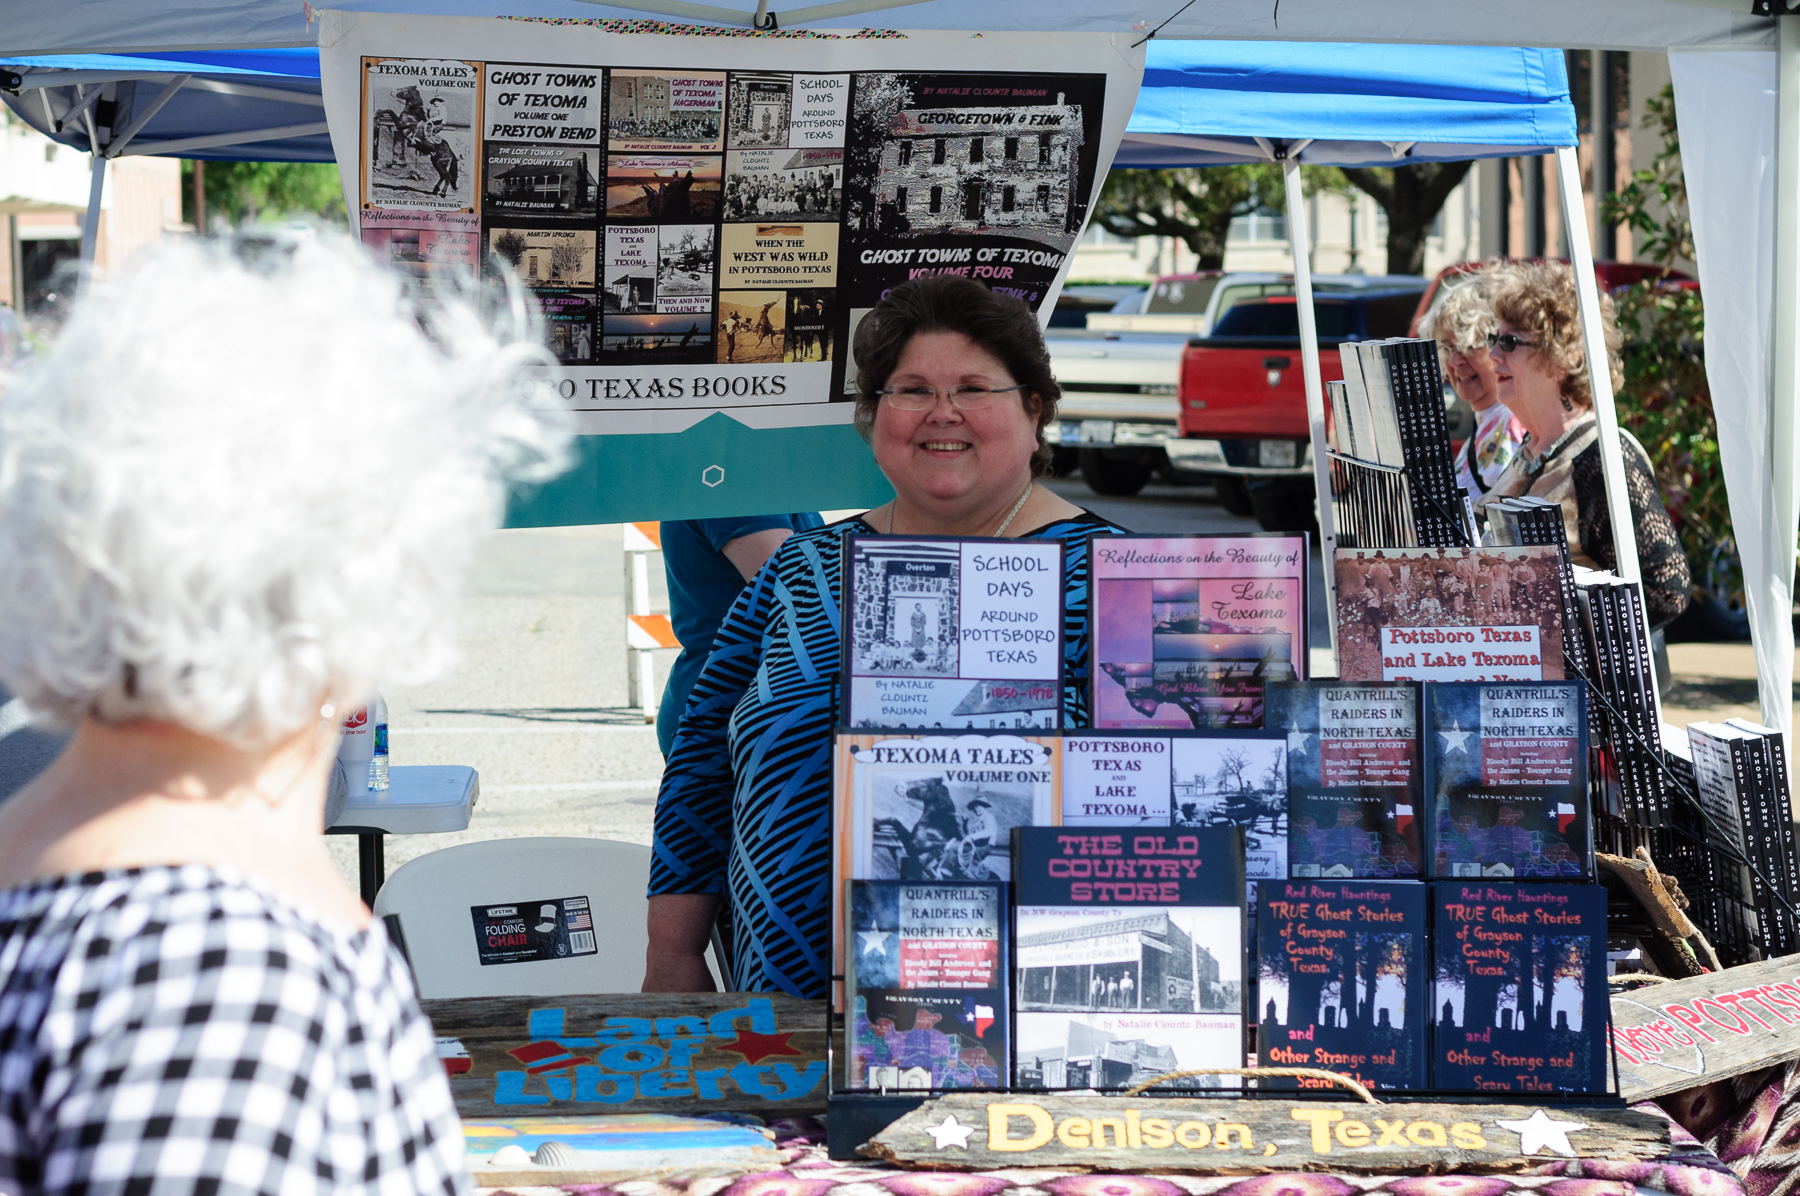 Local history, the specialty of author Natalie Clountz Bauman, was one of the many genres available in book form bringing the past to life.